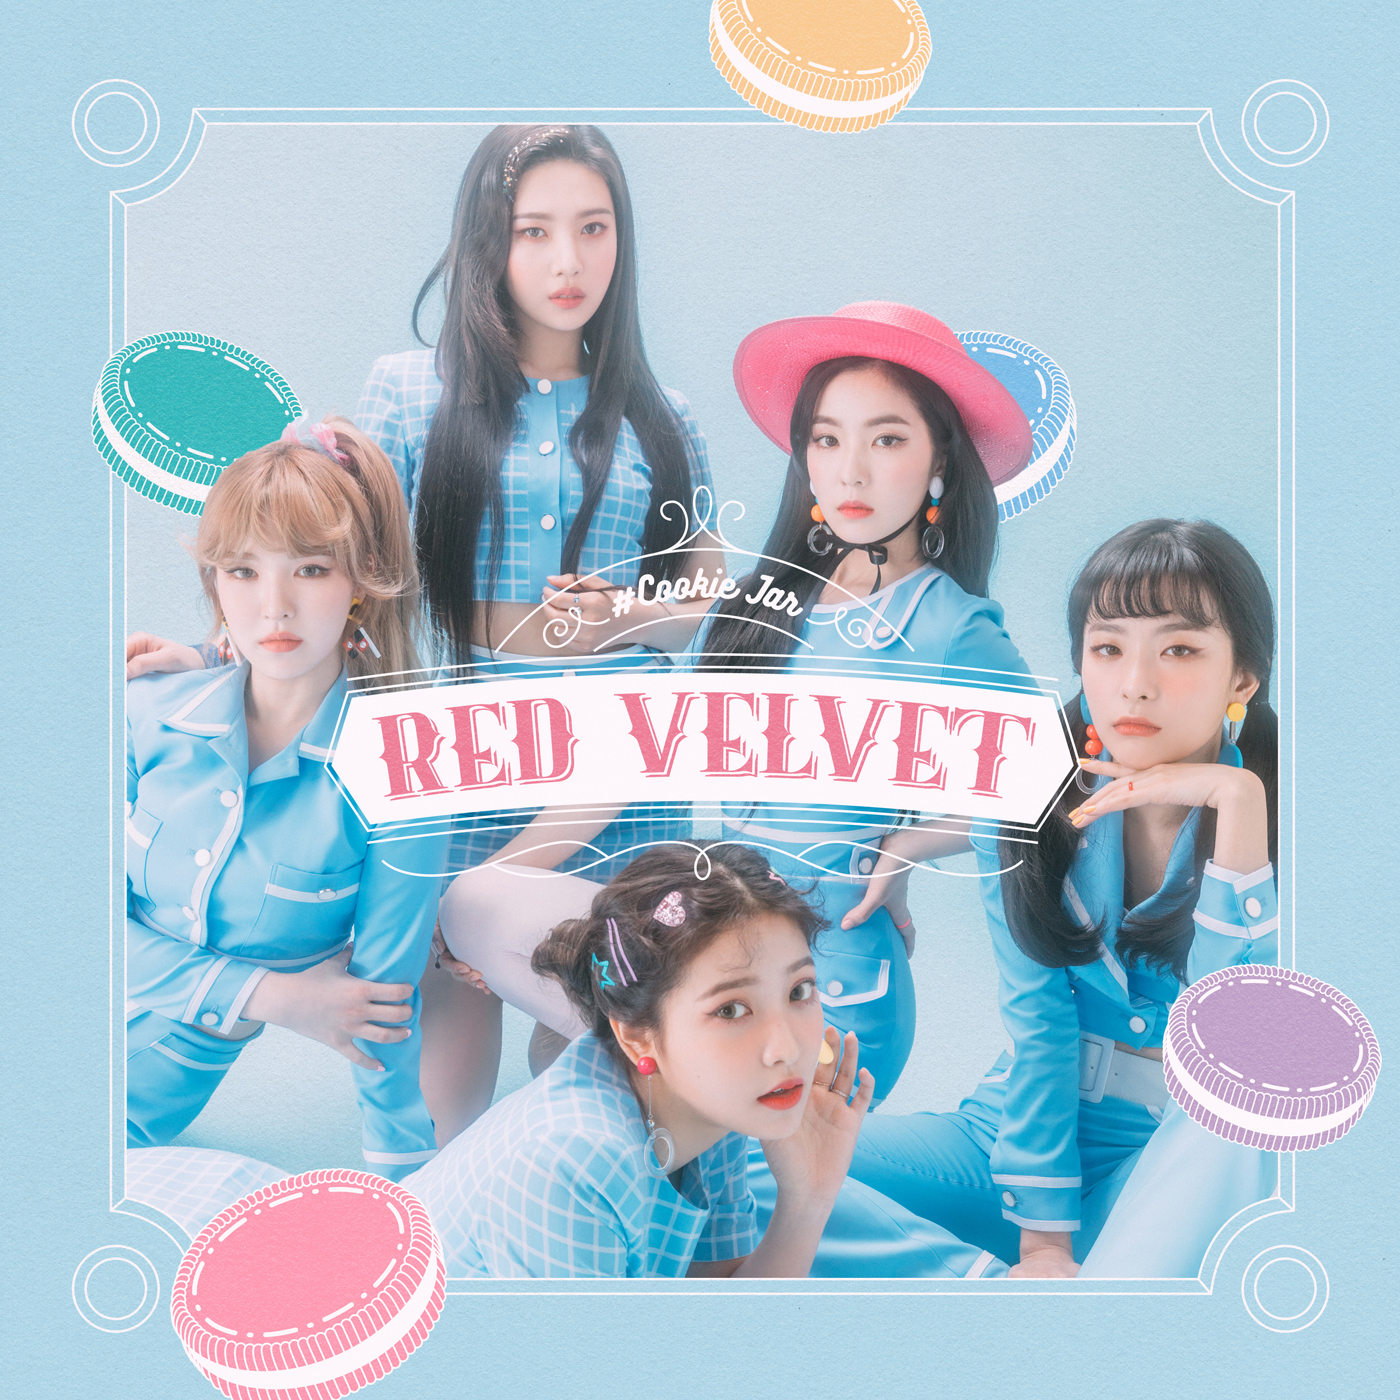 20180705.1816.8 Red Velvet - #Cookie Jar cover.jpg